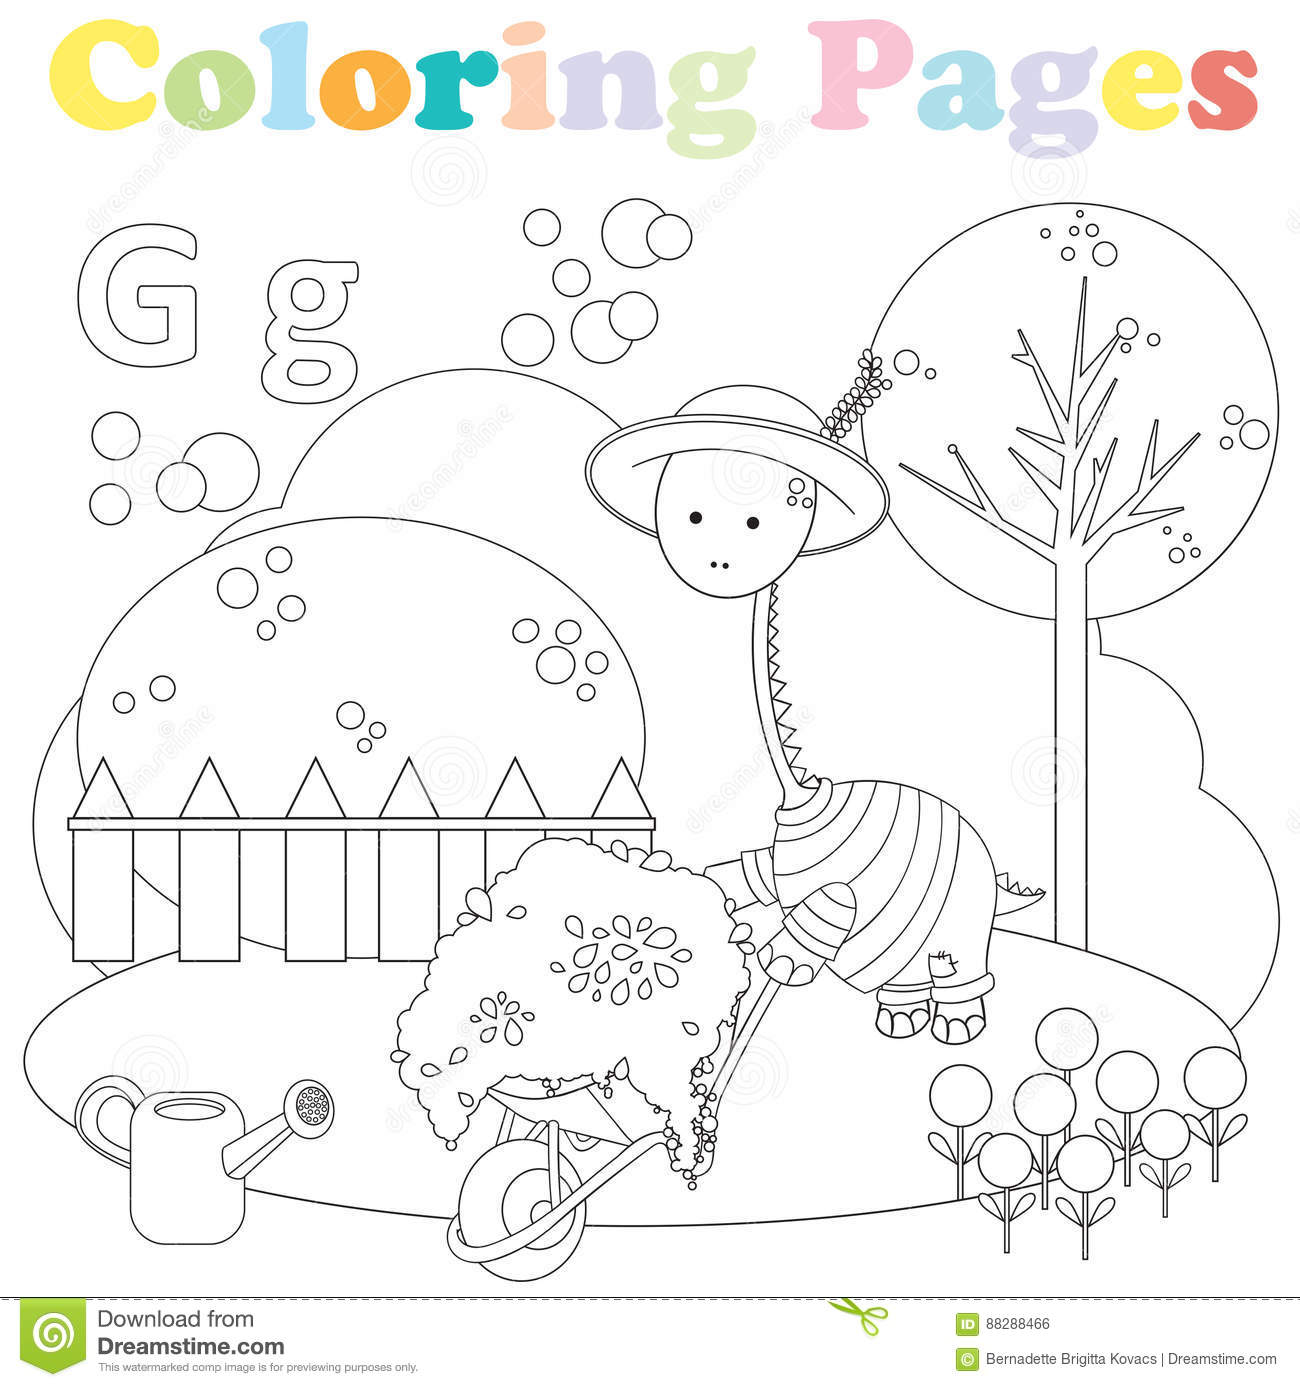 coloring page kids alphabet set letter g cute dinosaur yard gardening